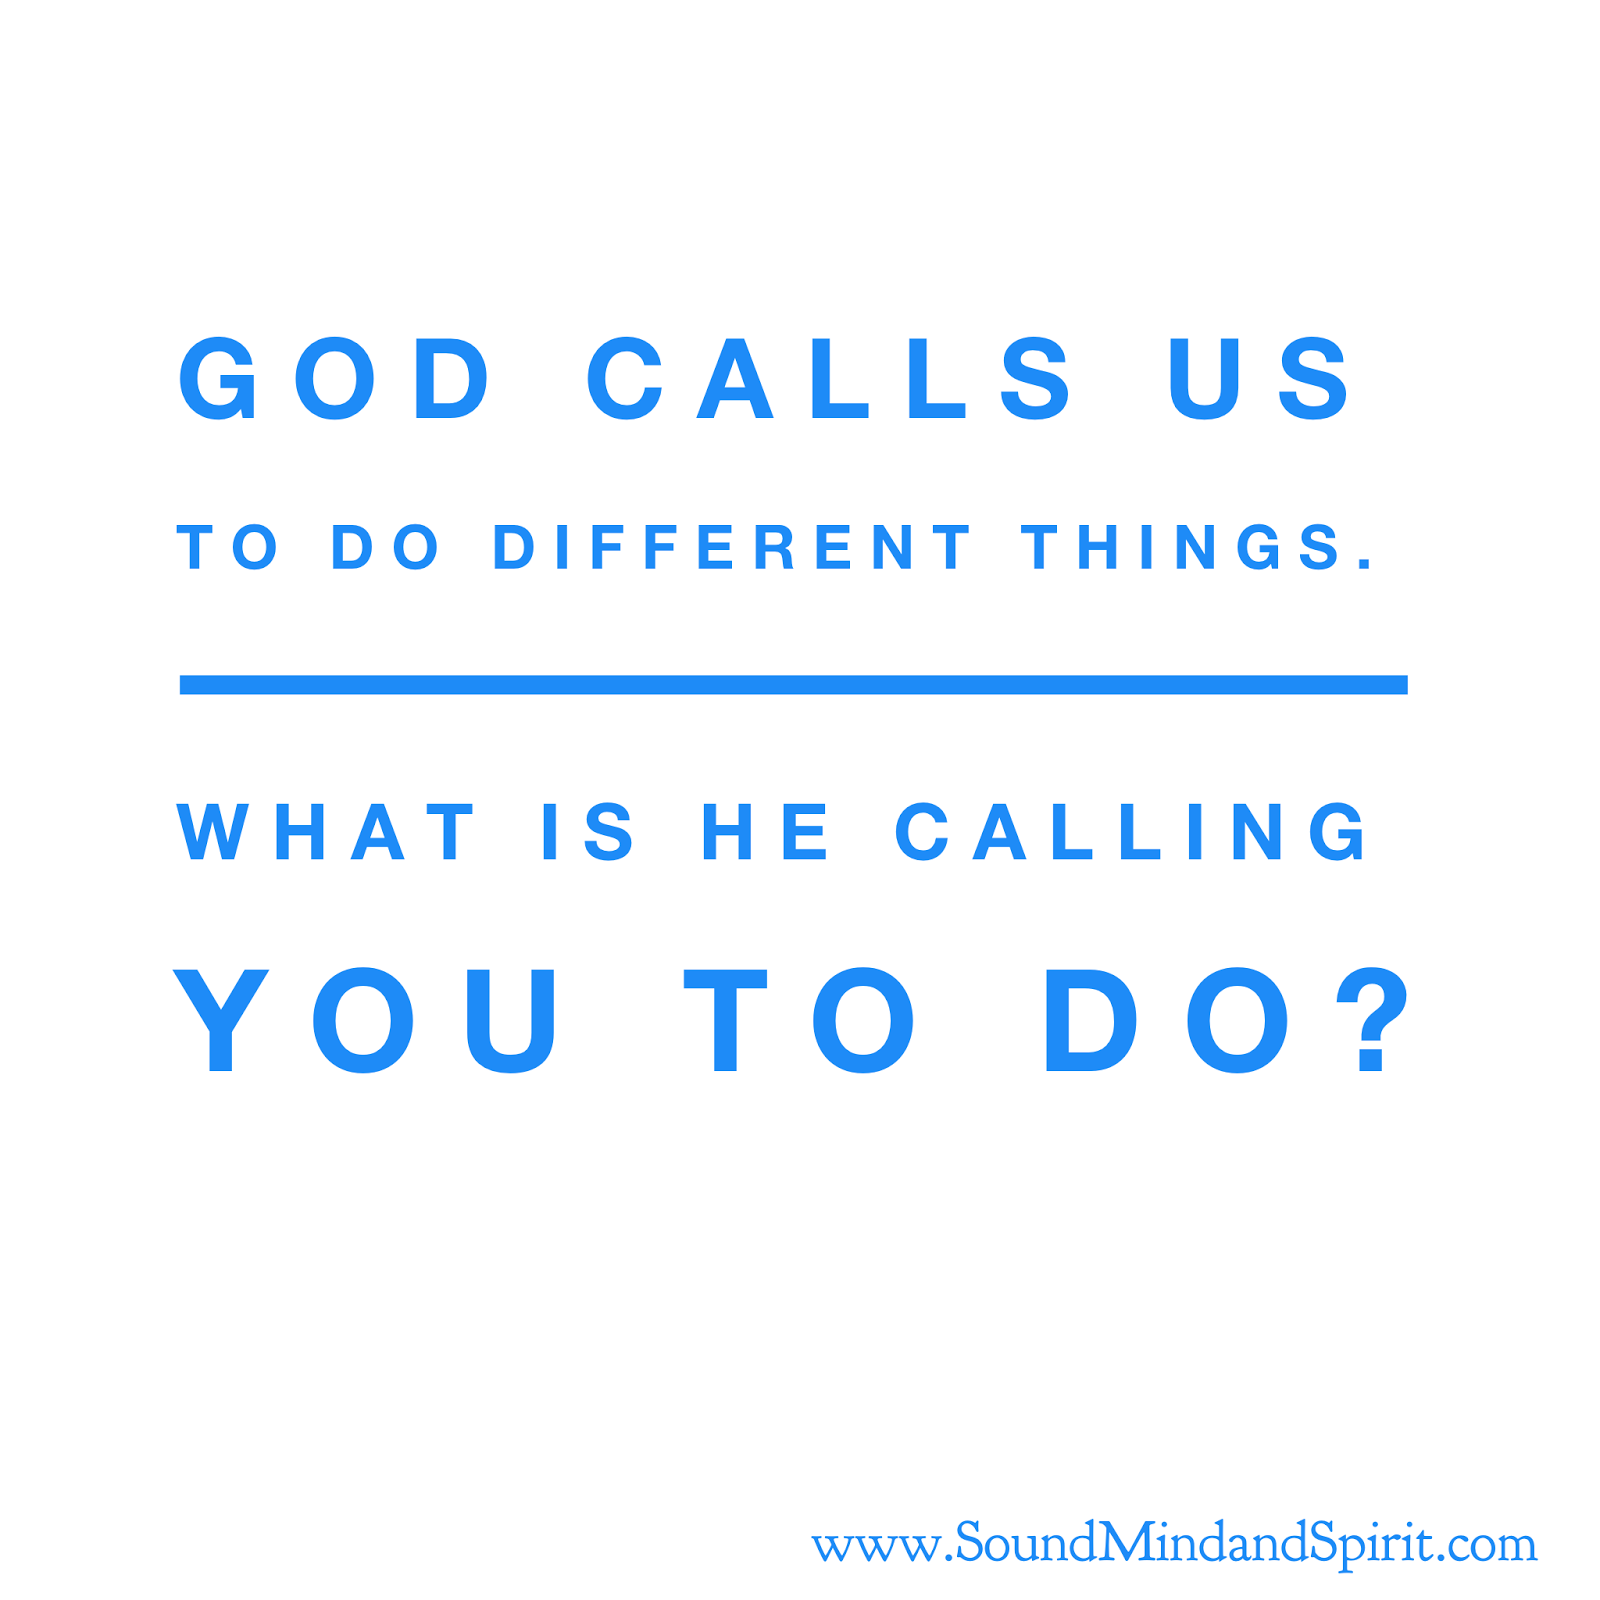 God calls us to do different things.  What is he calling you to do?